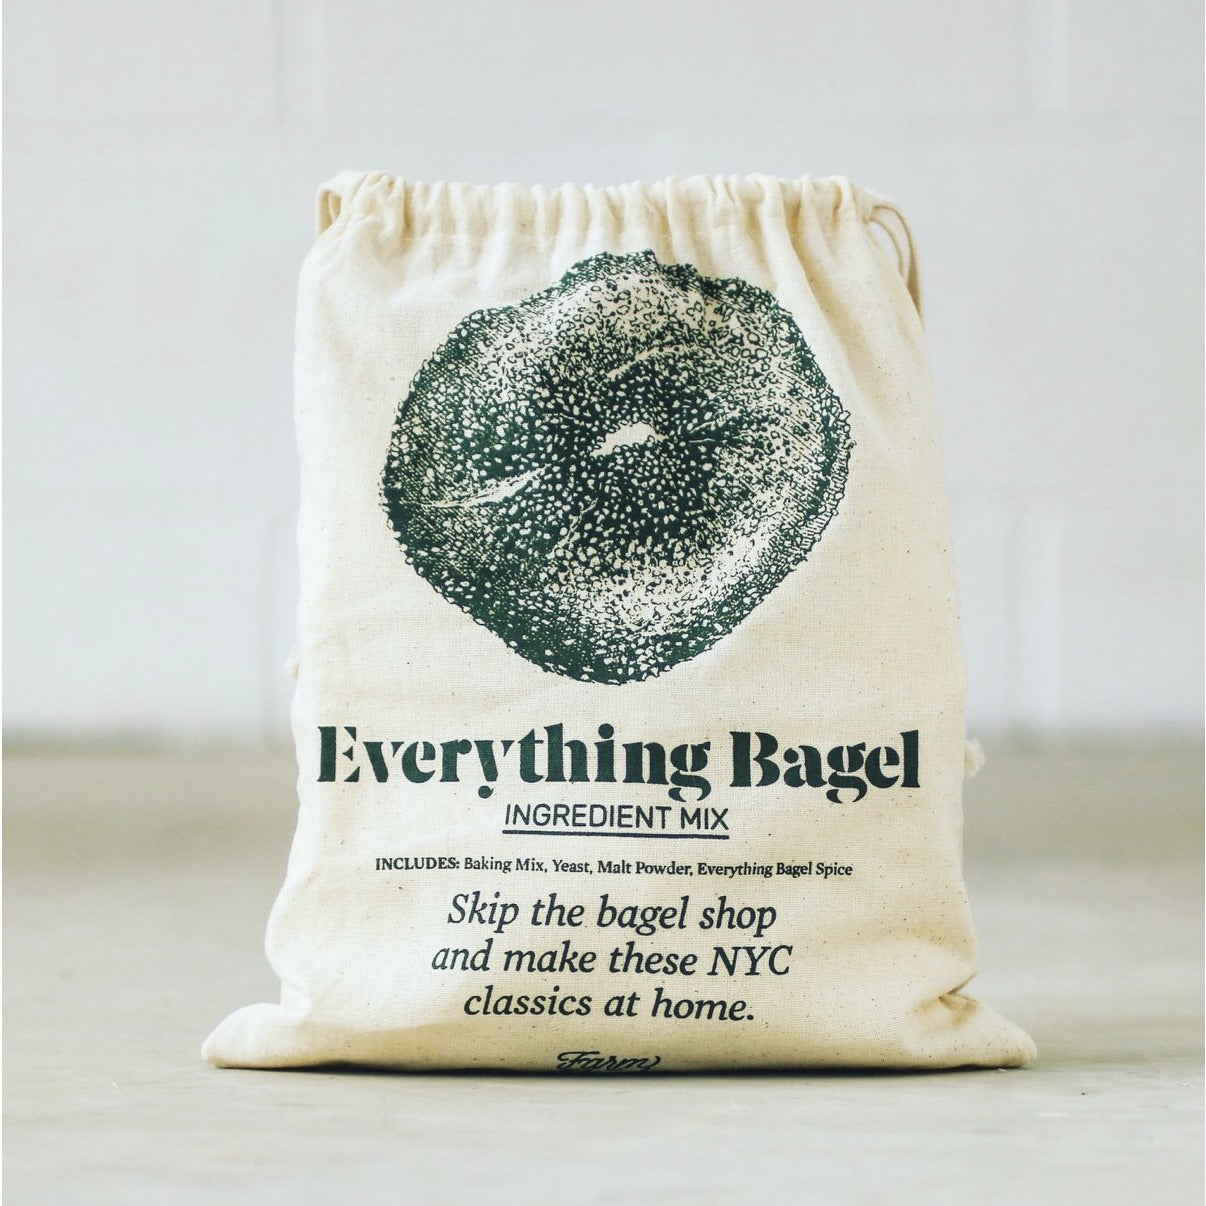 FARM STEADY everything bagel baking mix